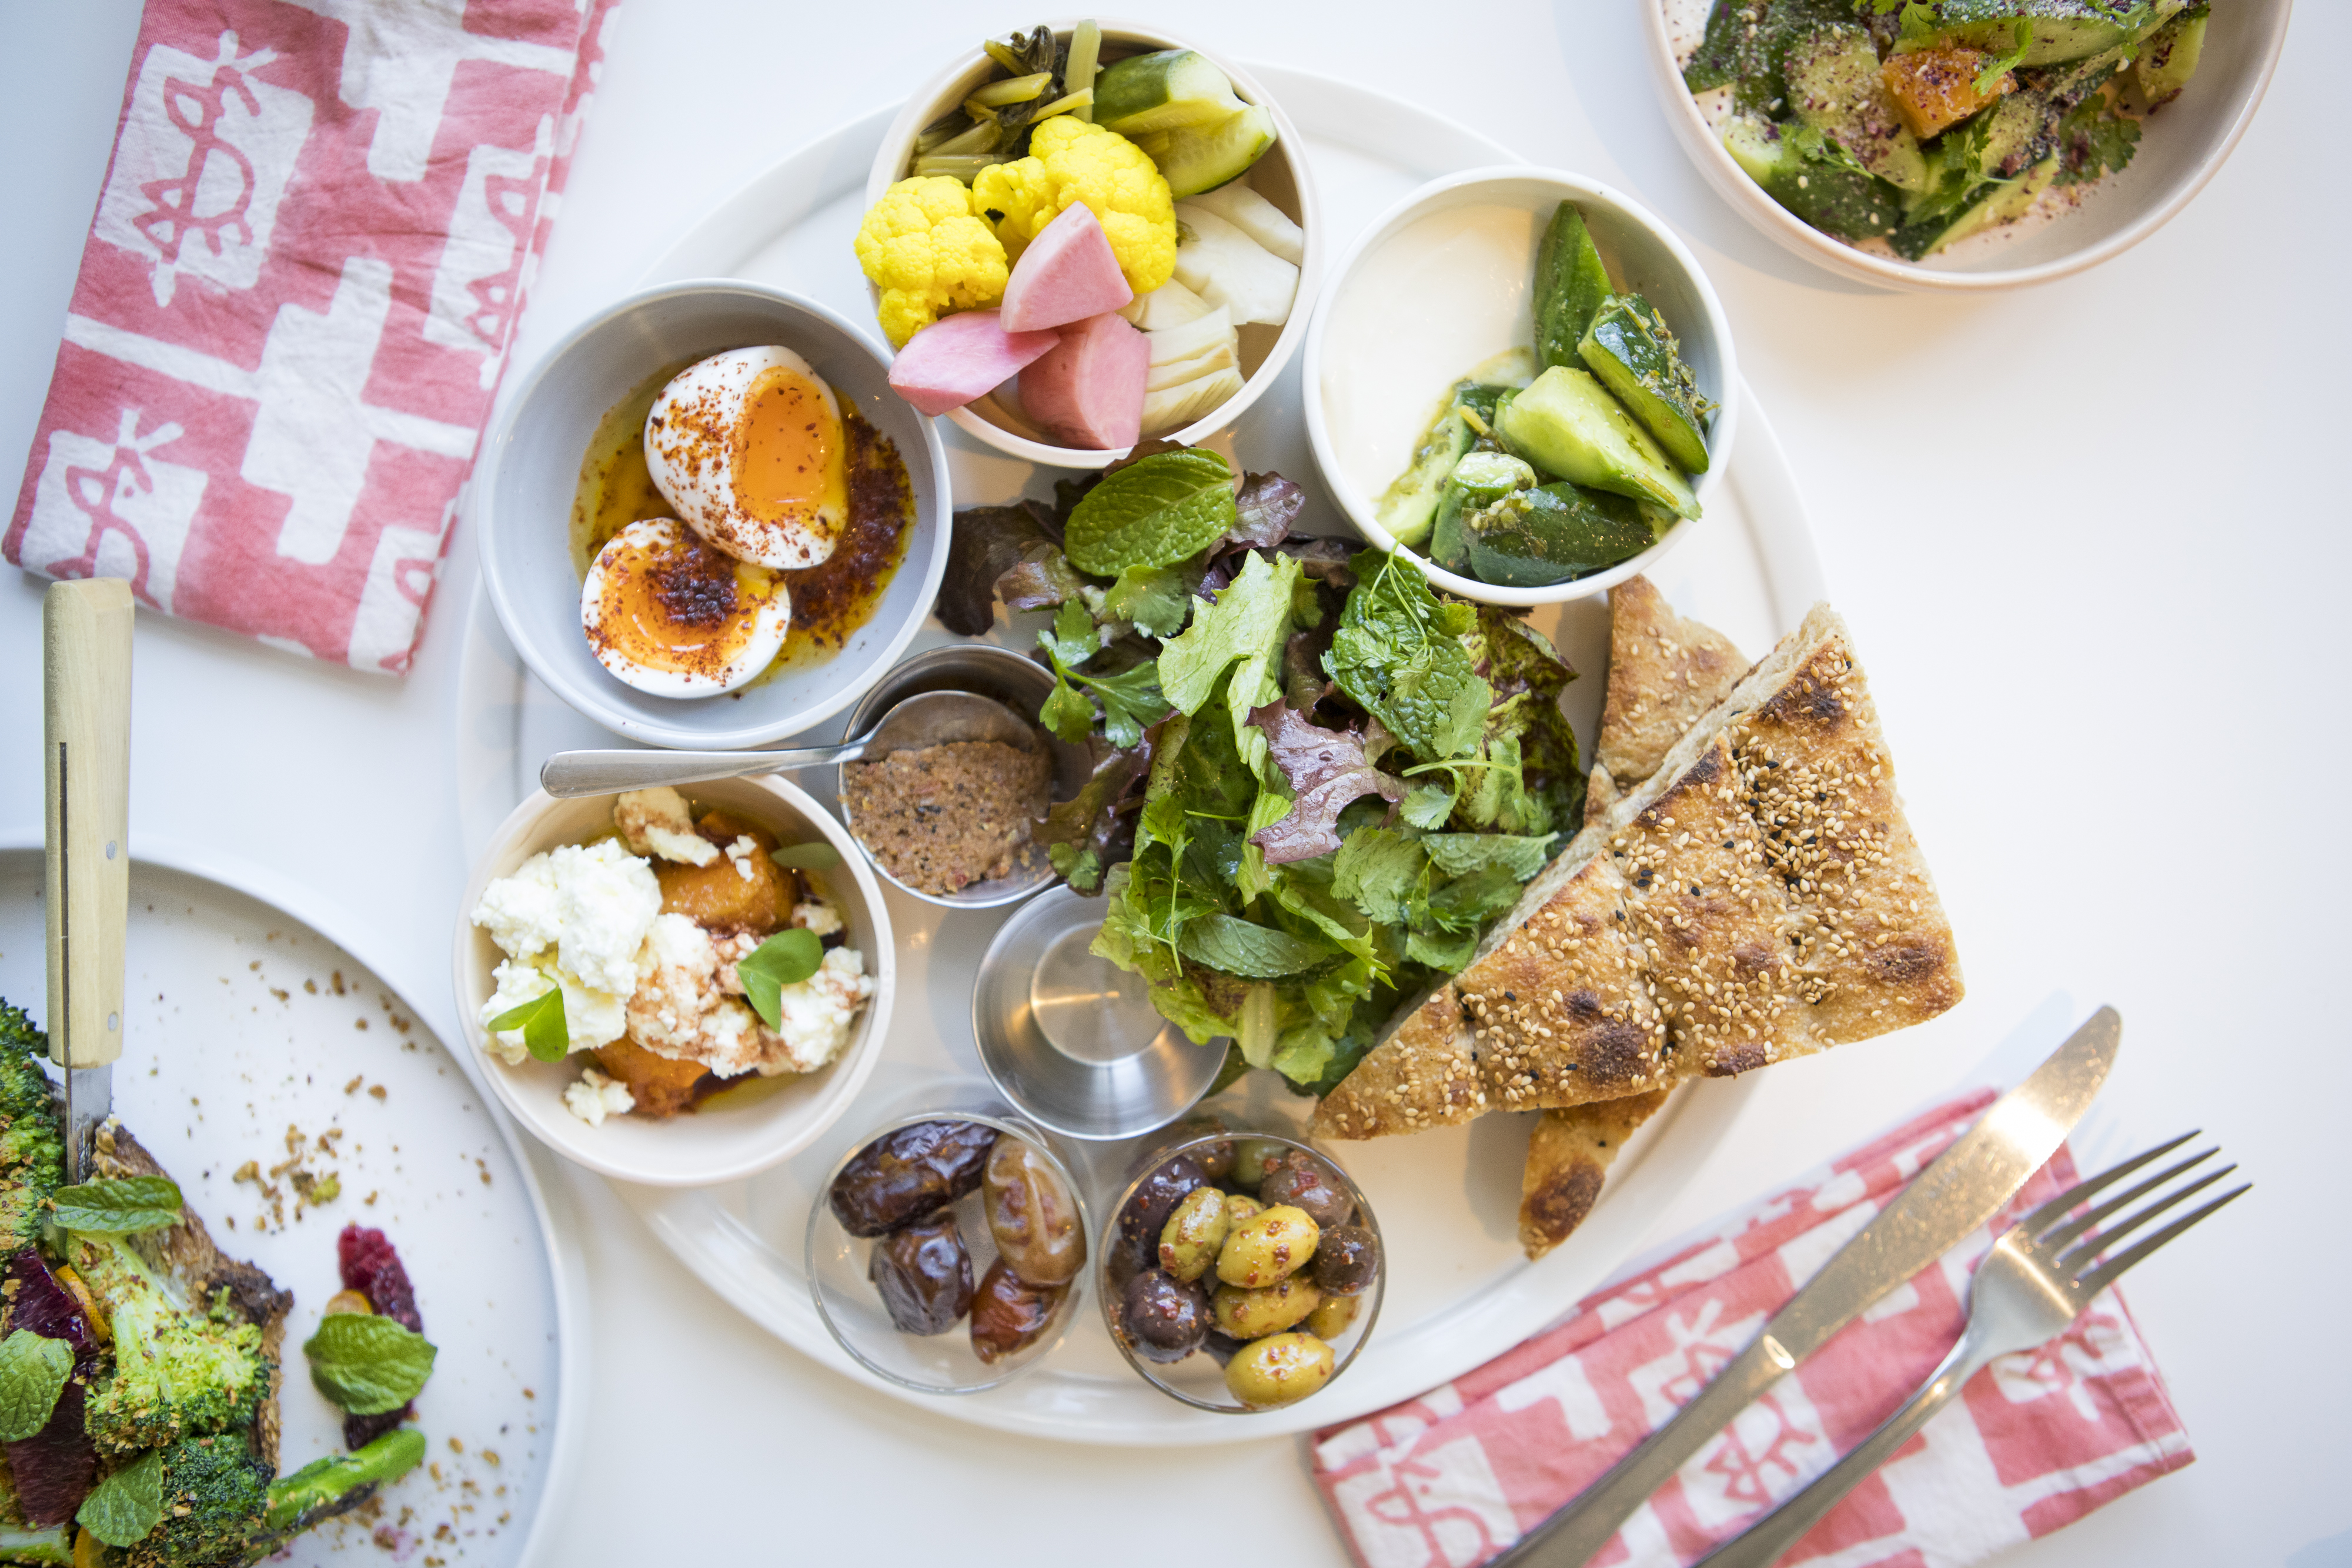 15 Restaurants Perfect For Vegetarians In La Los Angeles The